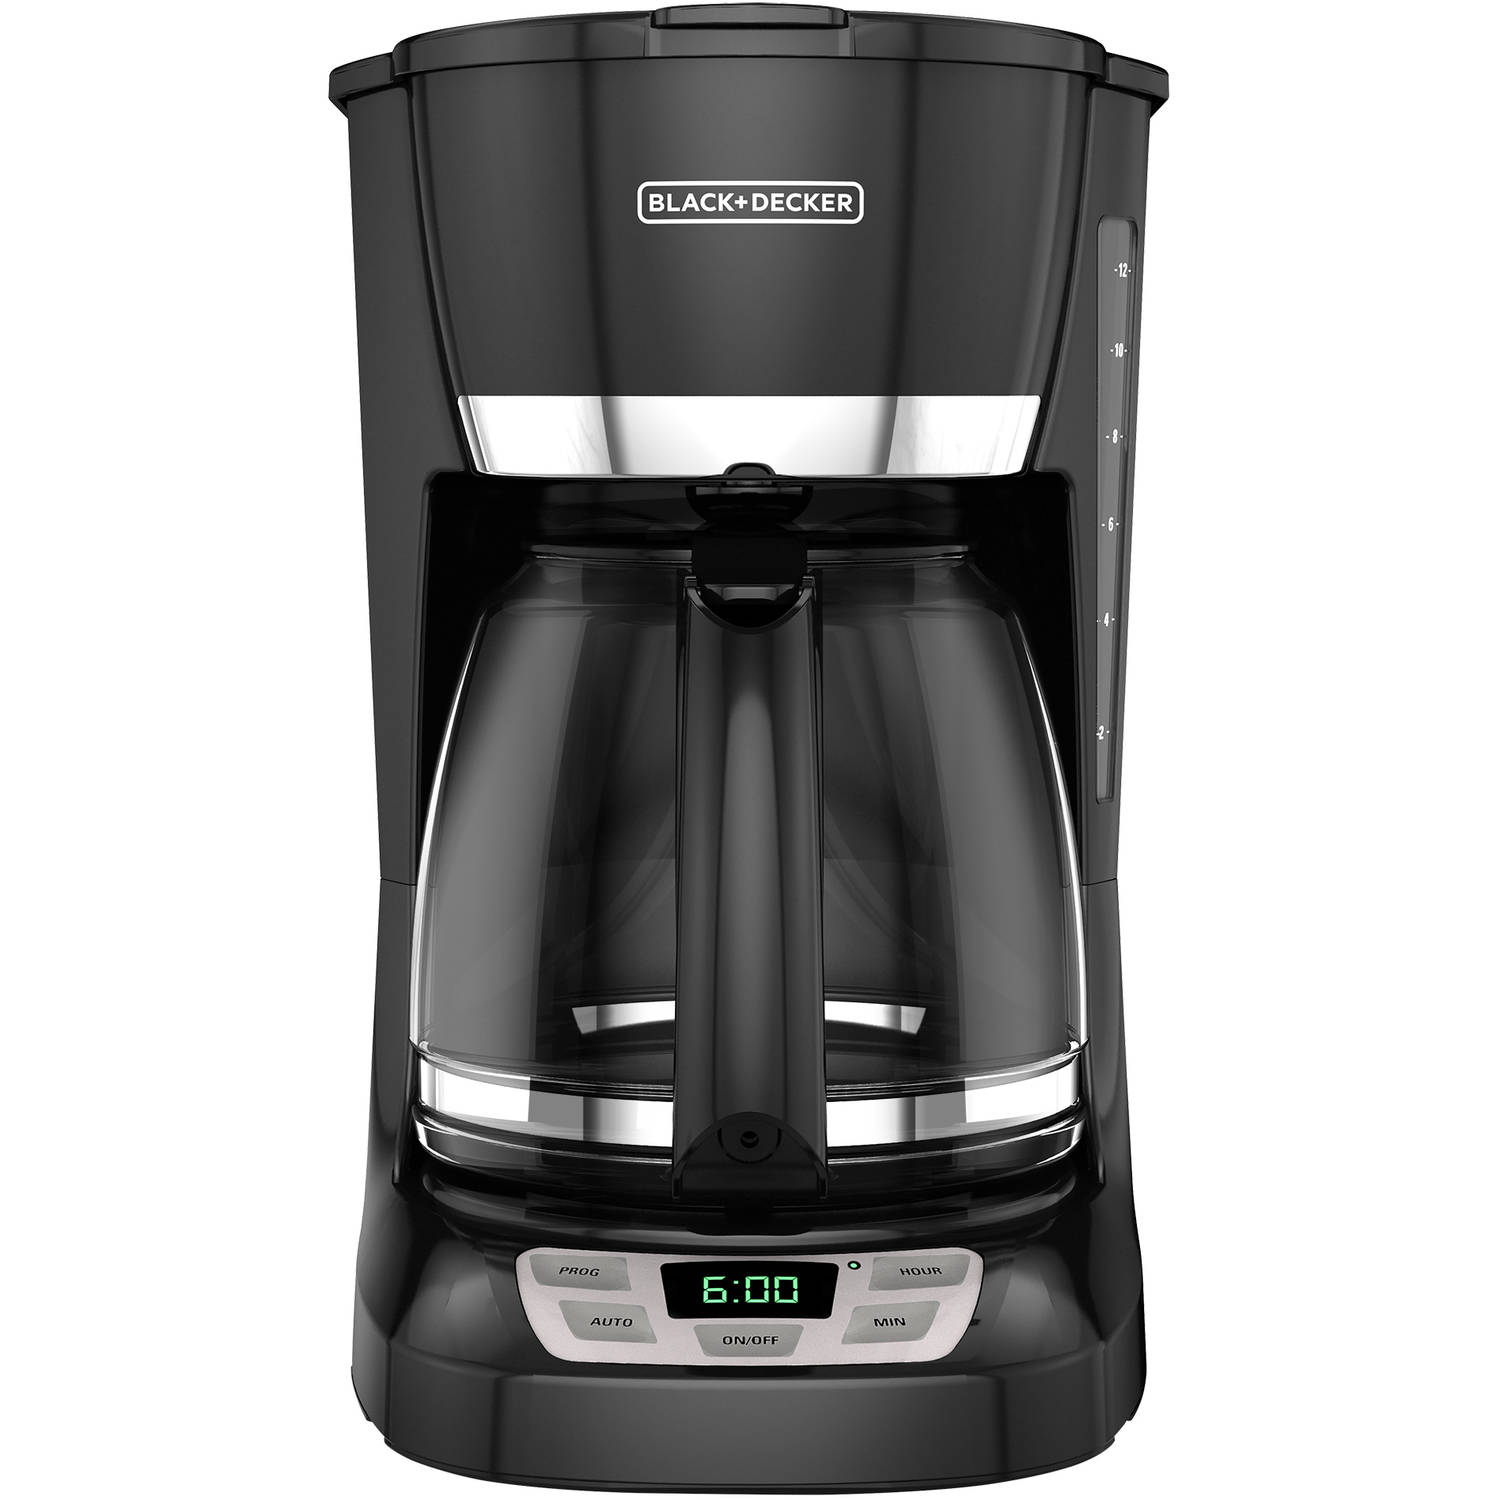 BLACK+DECKER 12 Cup Programmable Coffee Maker, CM1060B